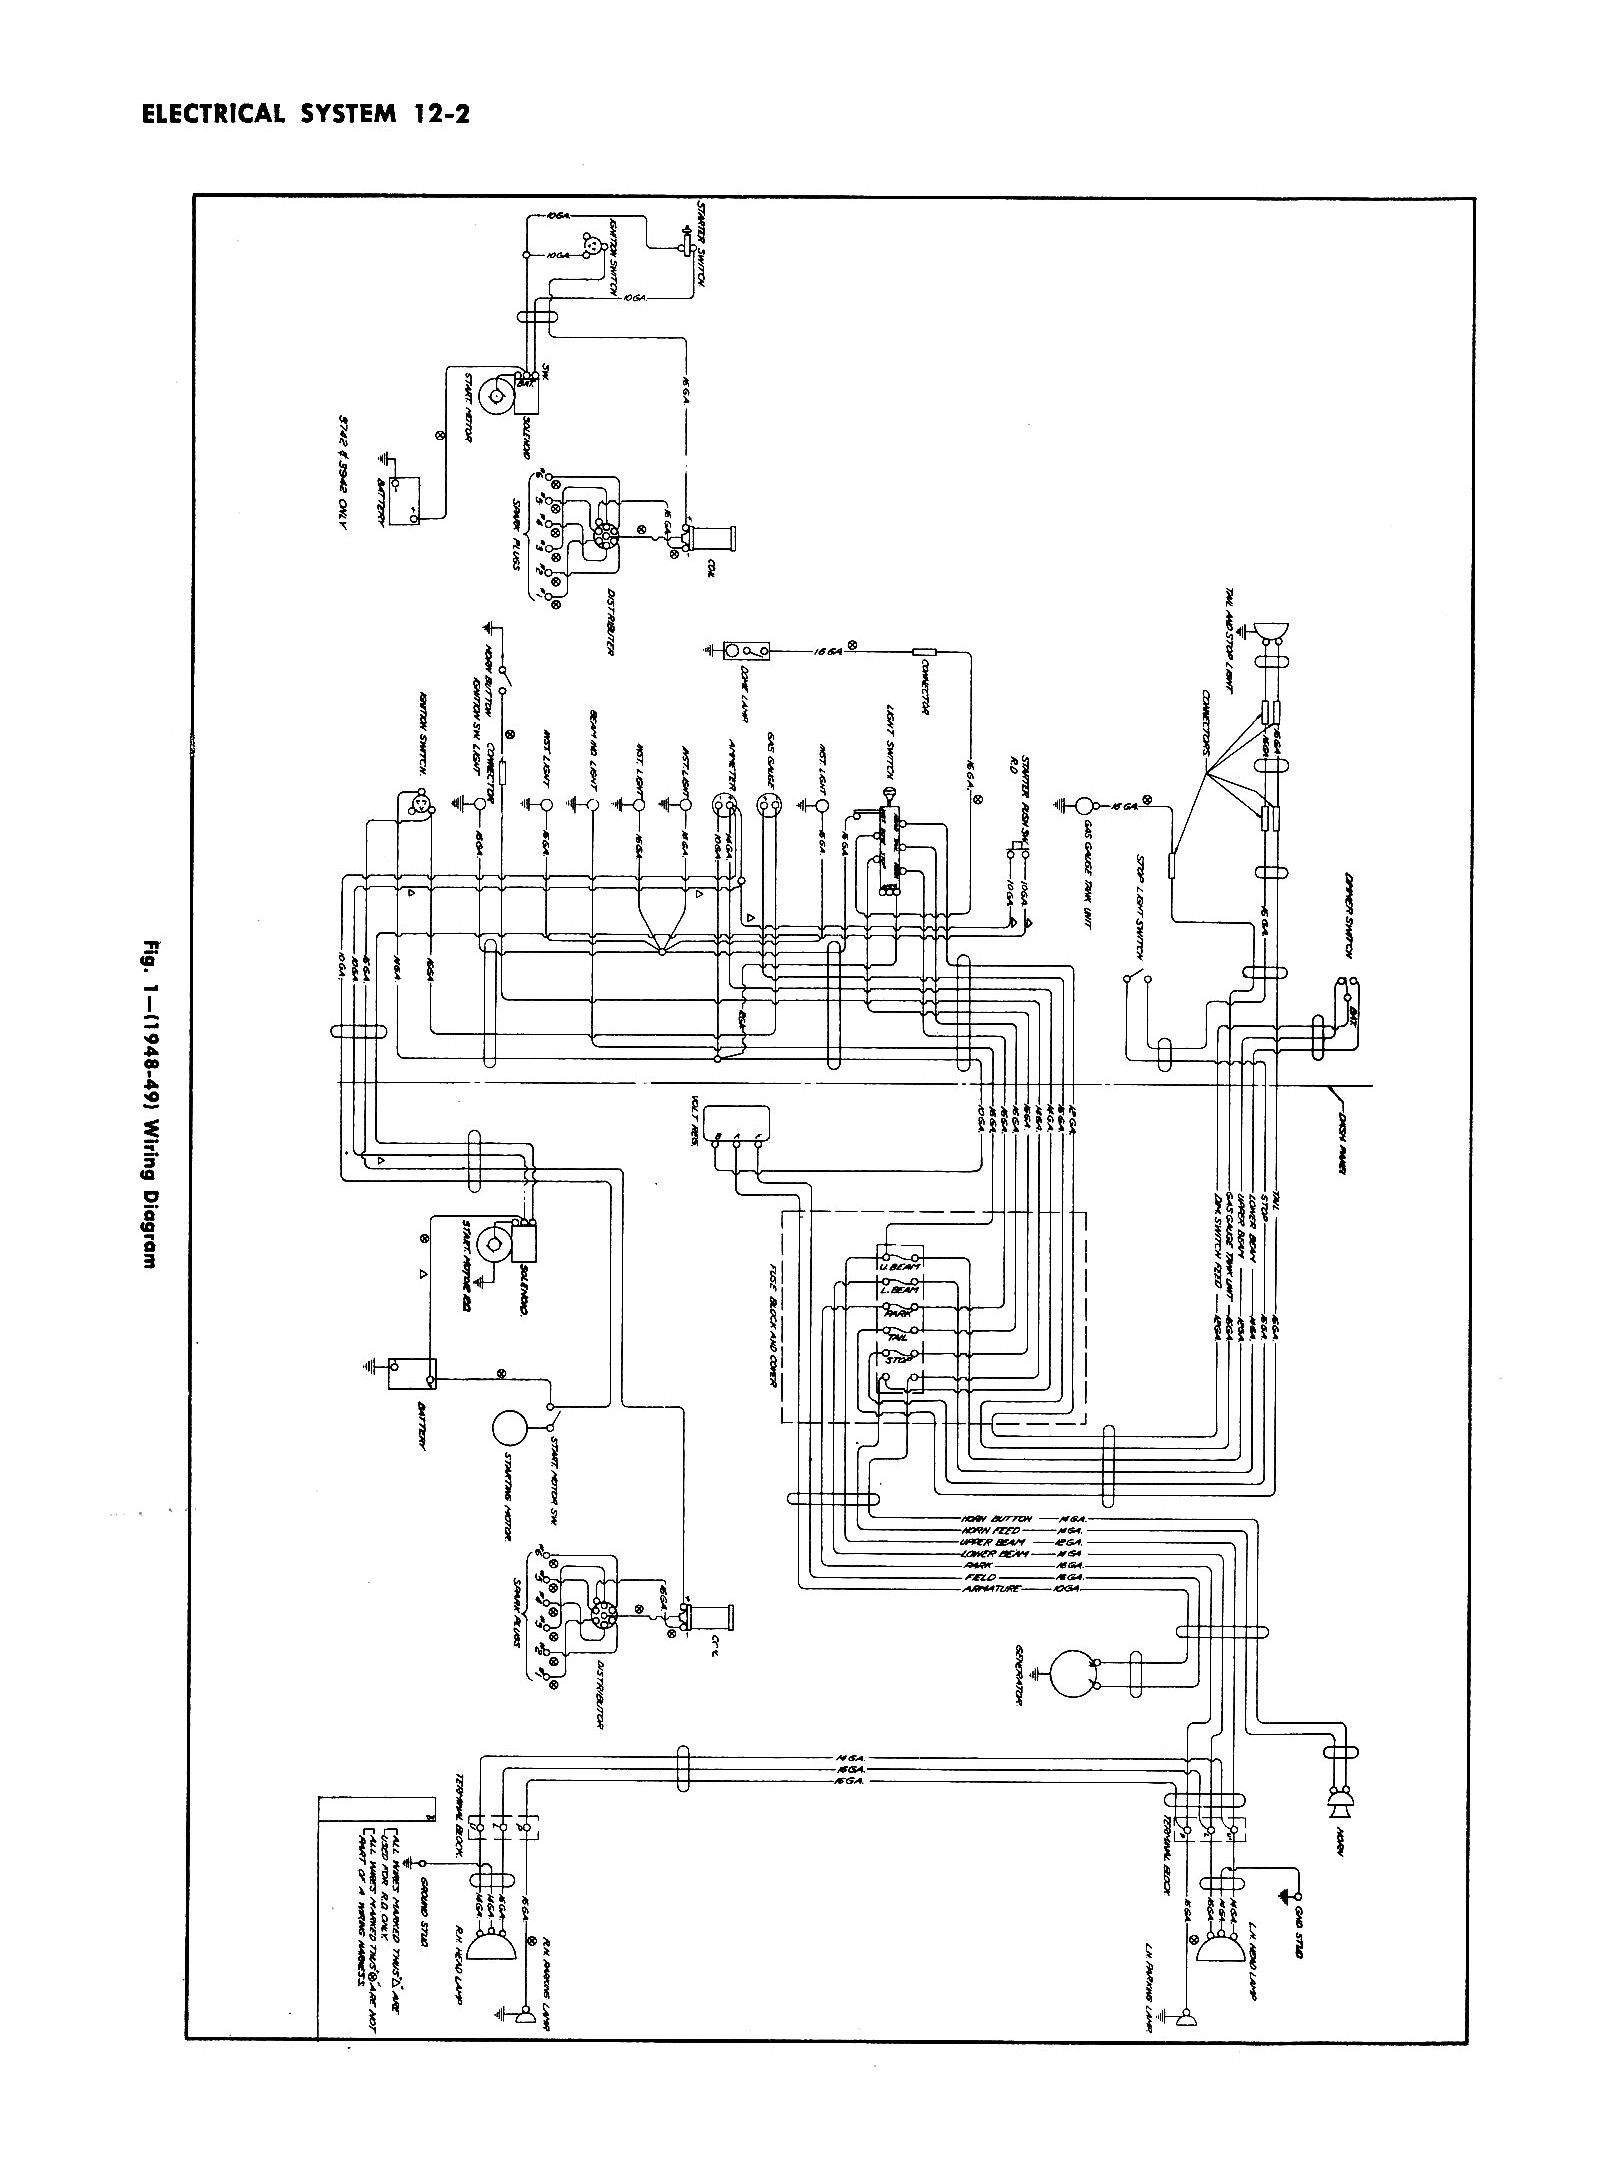 Chevy Wiring Diagrams 1954 Ford Truck Wiring Diagram 54 Chevy Truck Wiring  Diagram